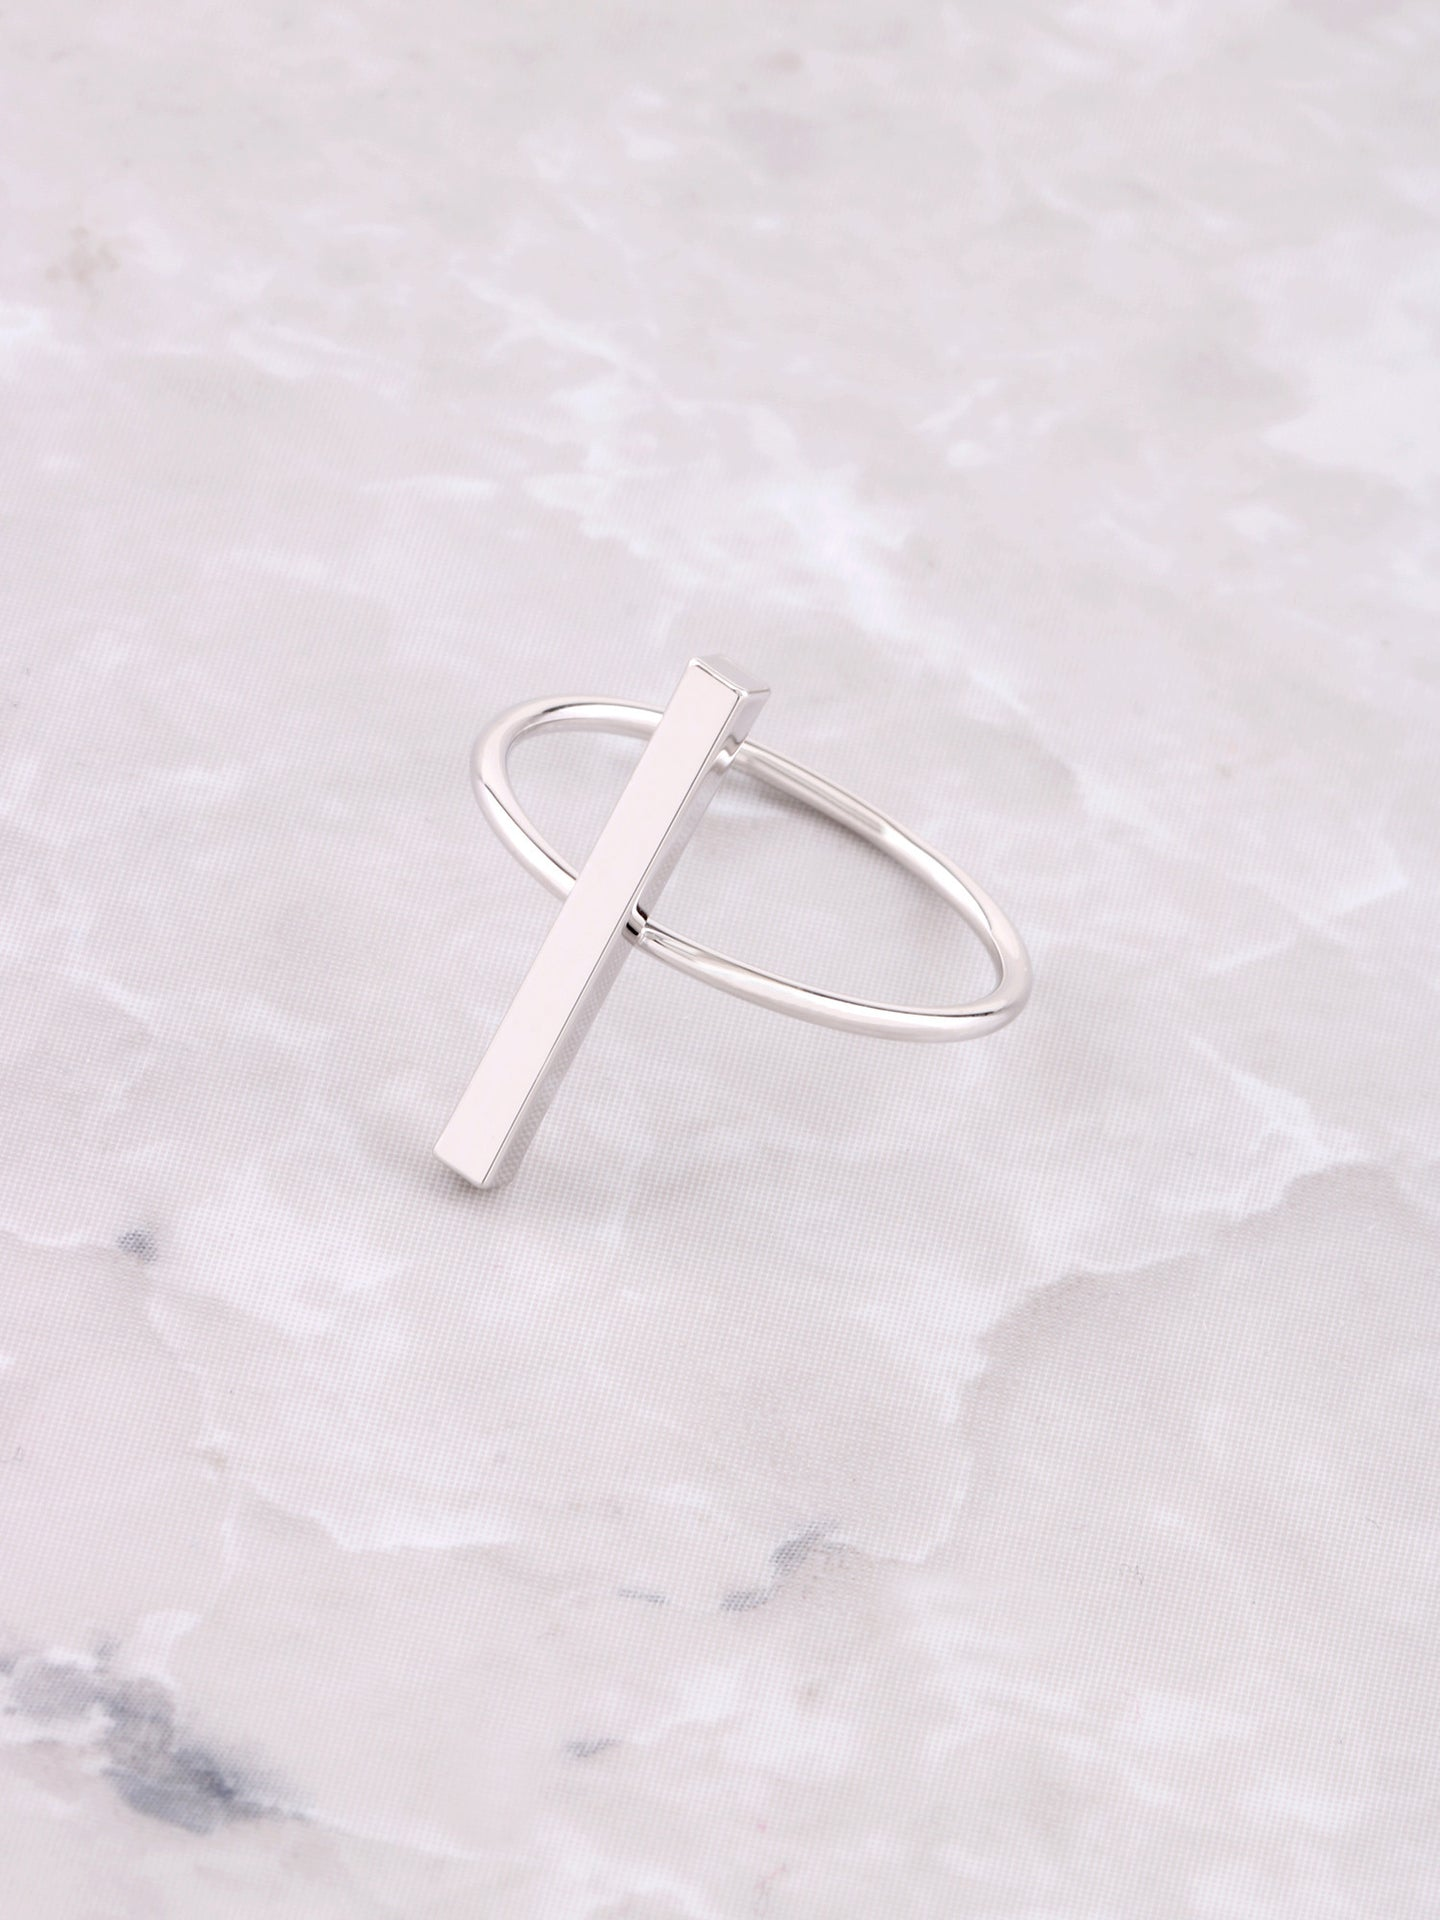 Straight Line Ring Anarchy Street Silver